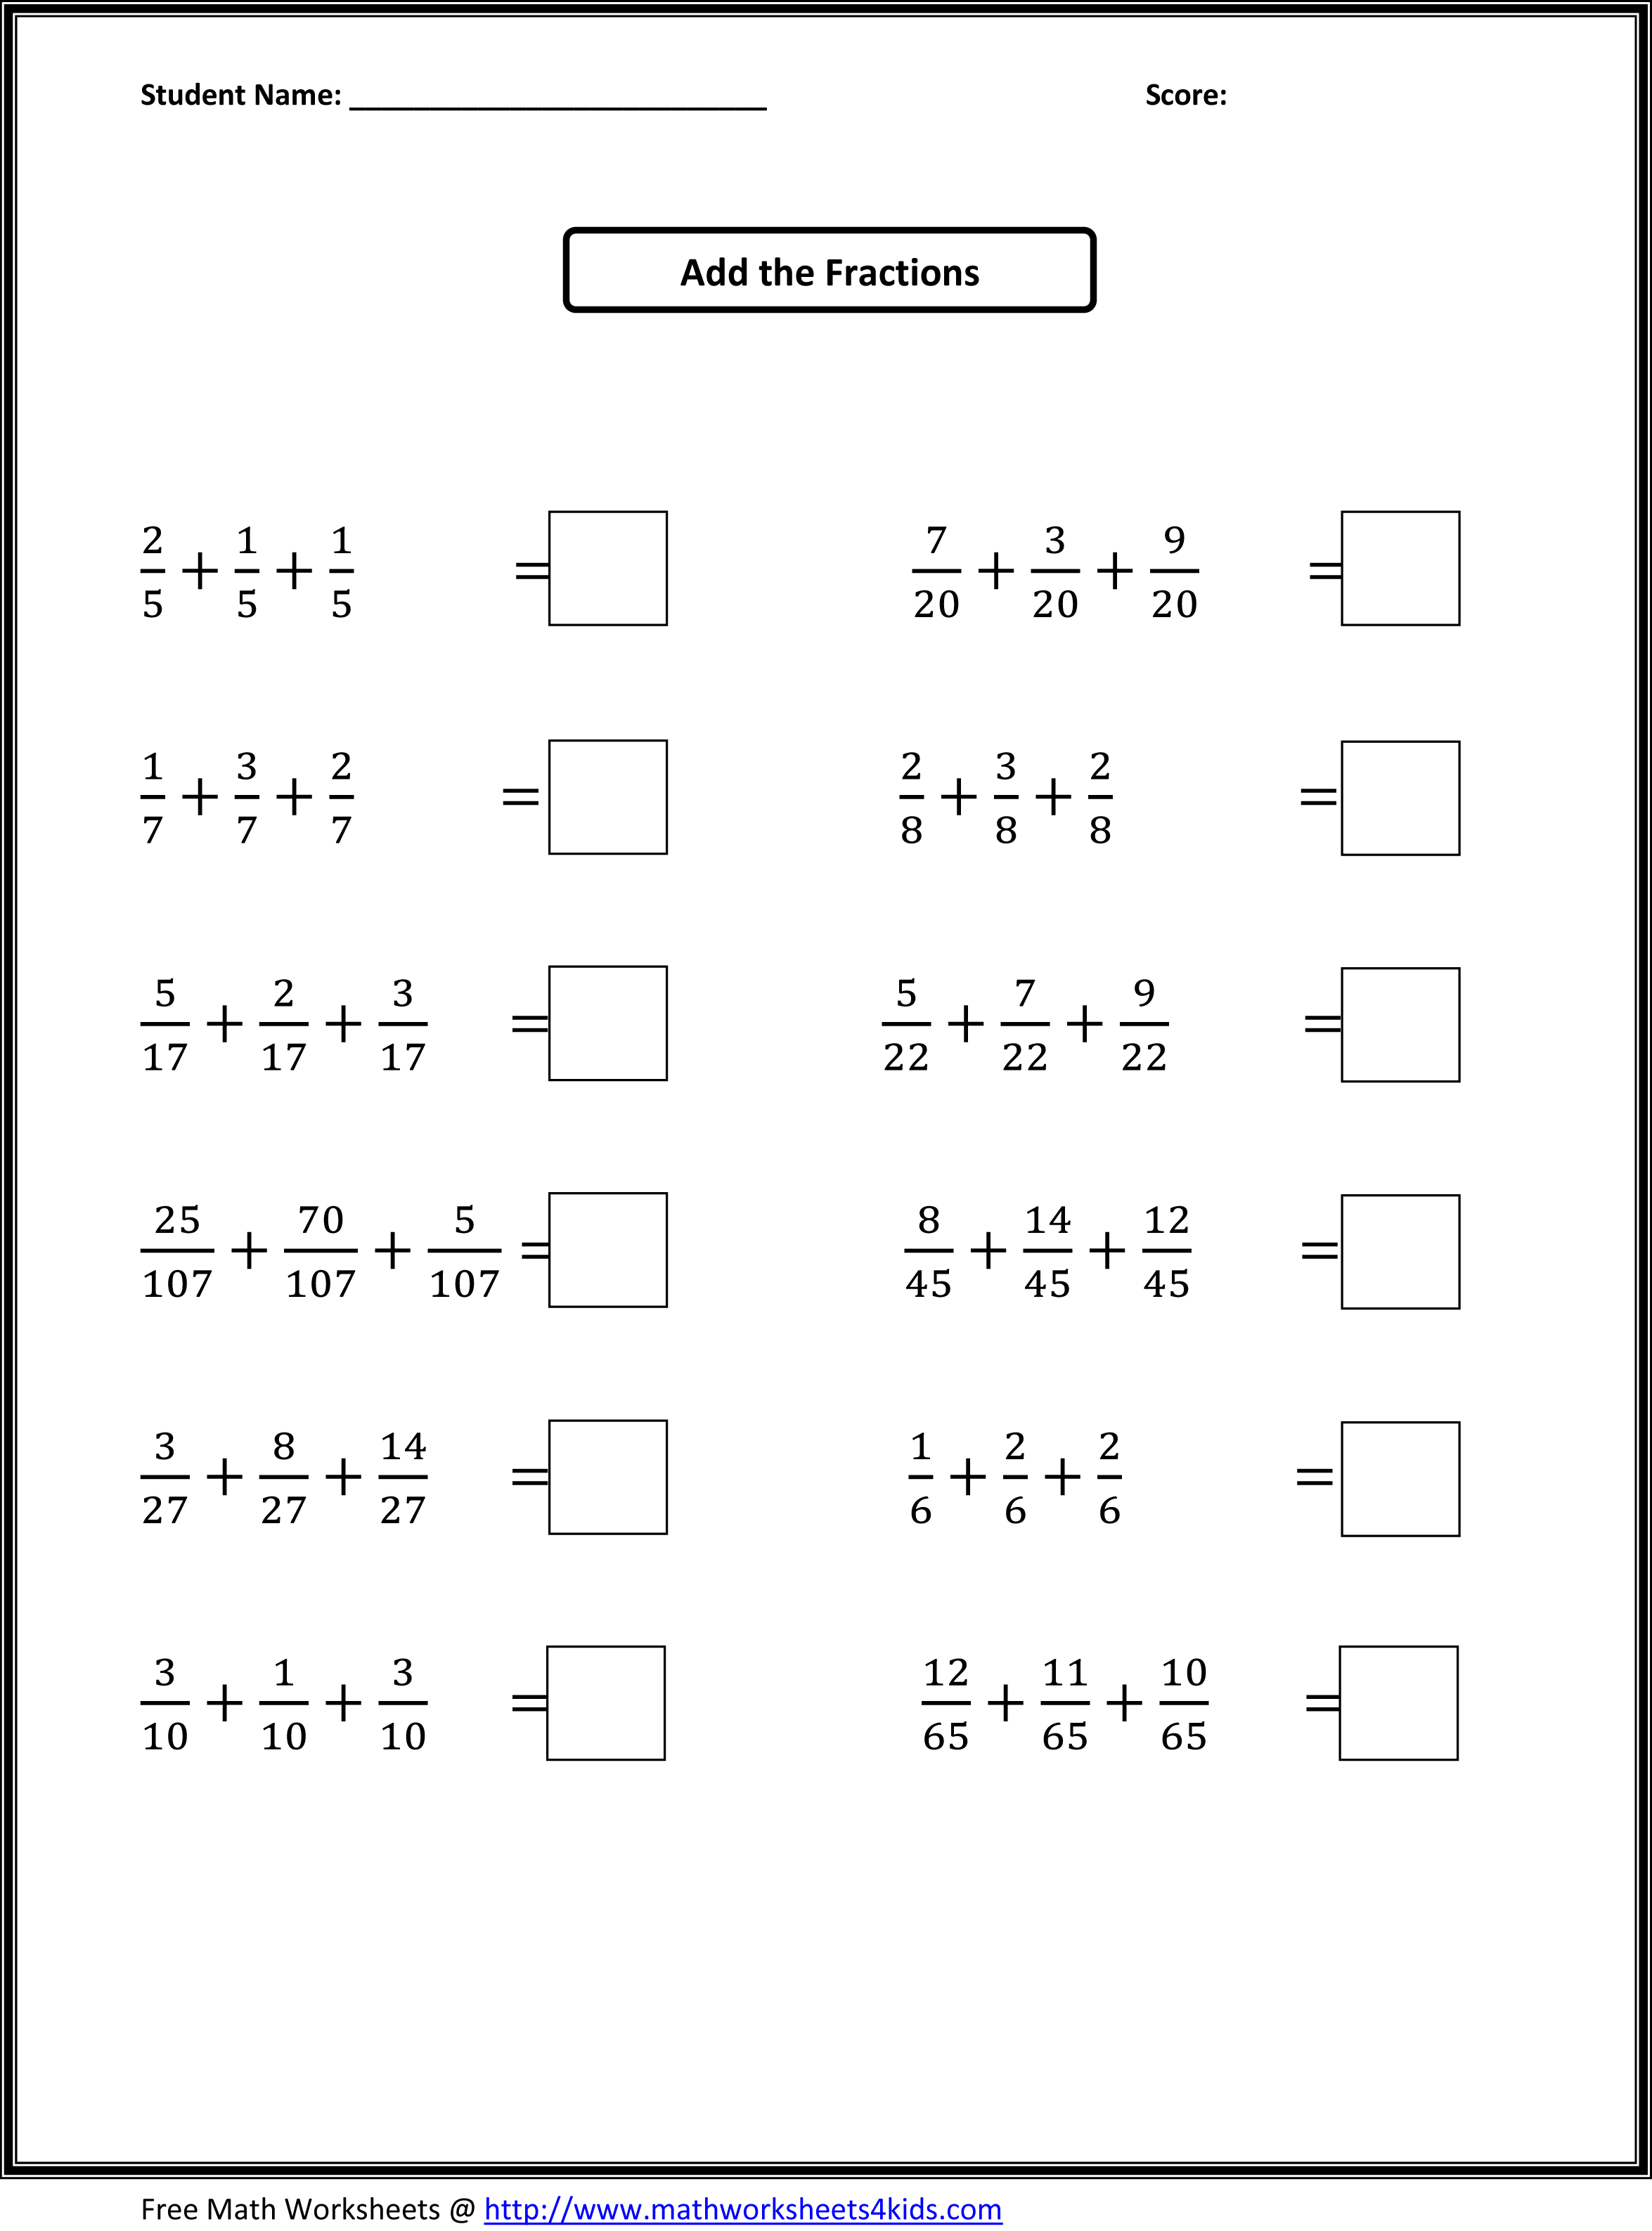 math worksheet : high quality equivalent fractions worksheets for 4th grade photos : 5th Grade Equivalent Fractions Worksheet